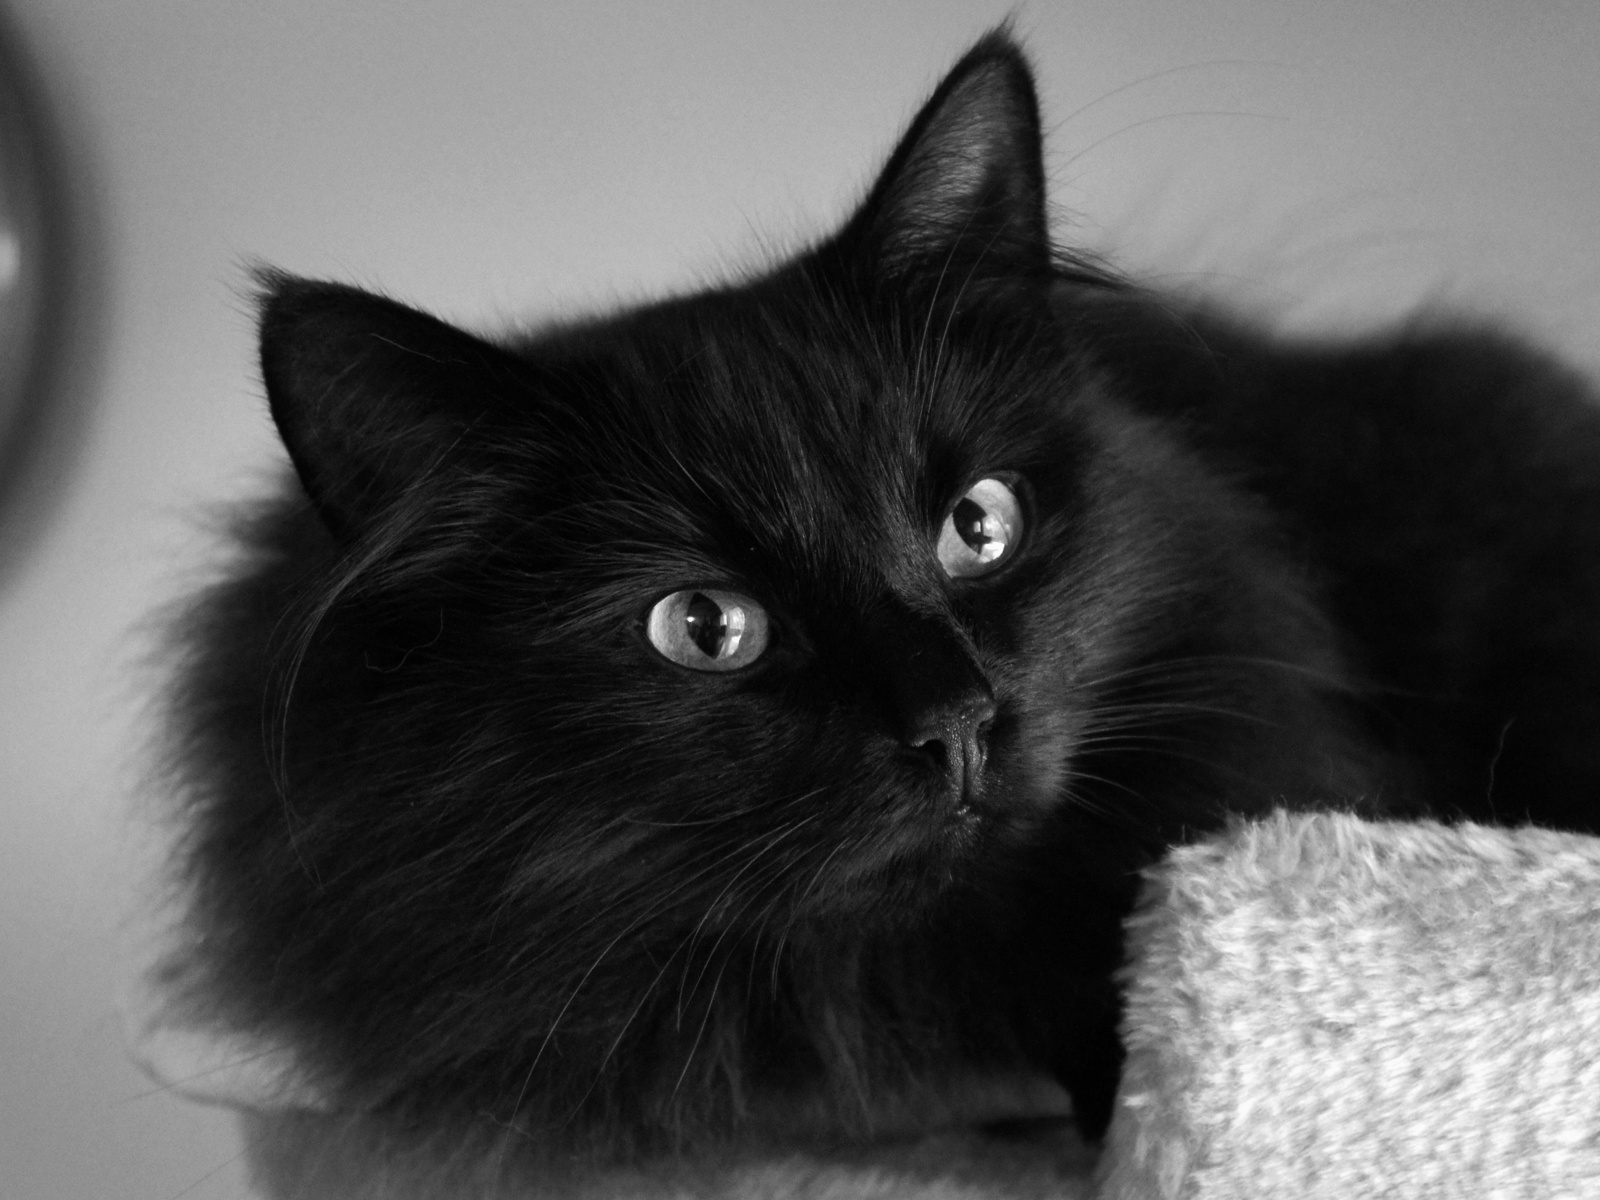 Black Cat Wallpaper 304 1600x1200 Px Pickywallpapers Com